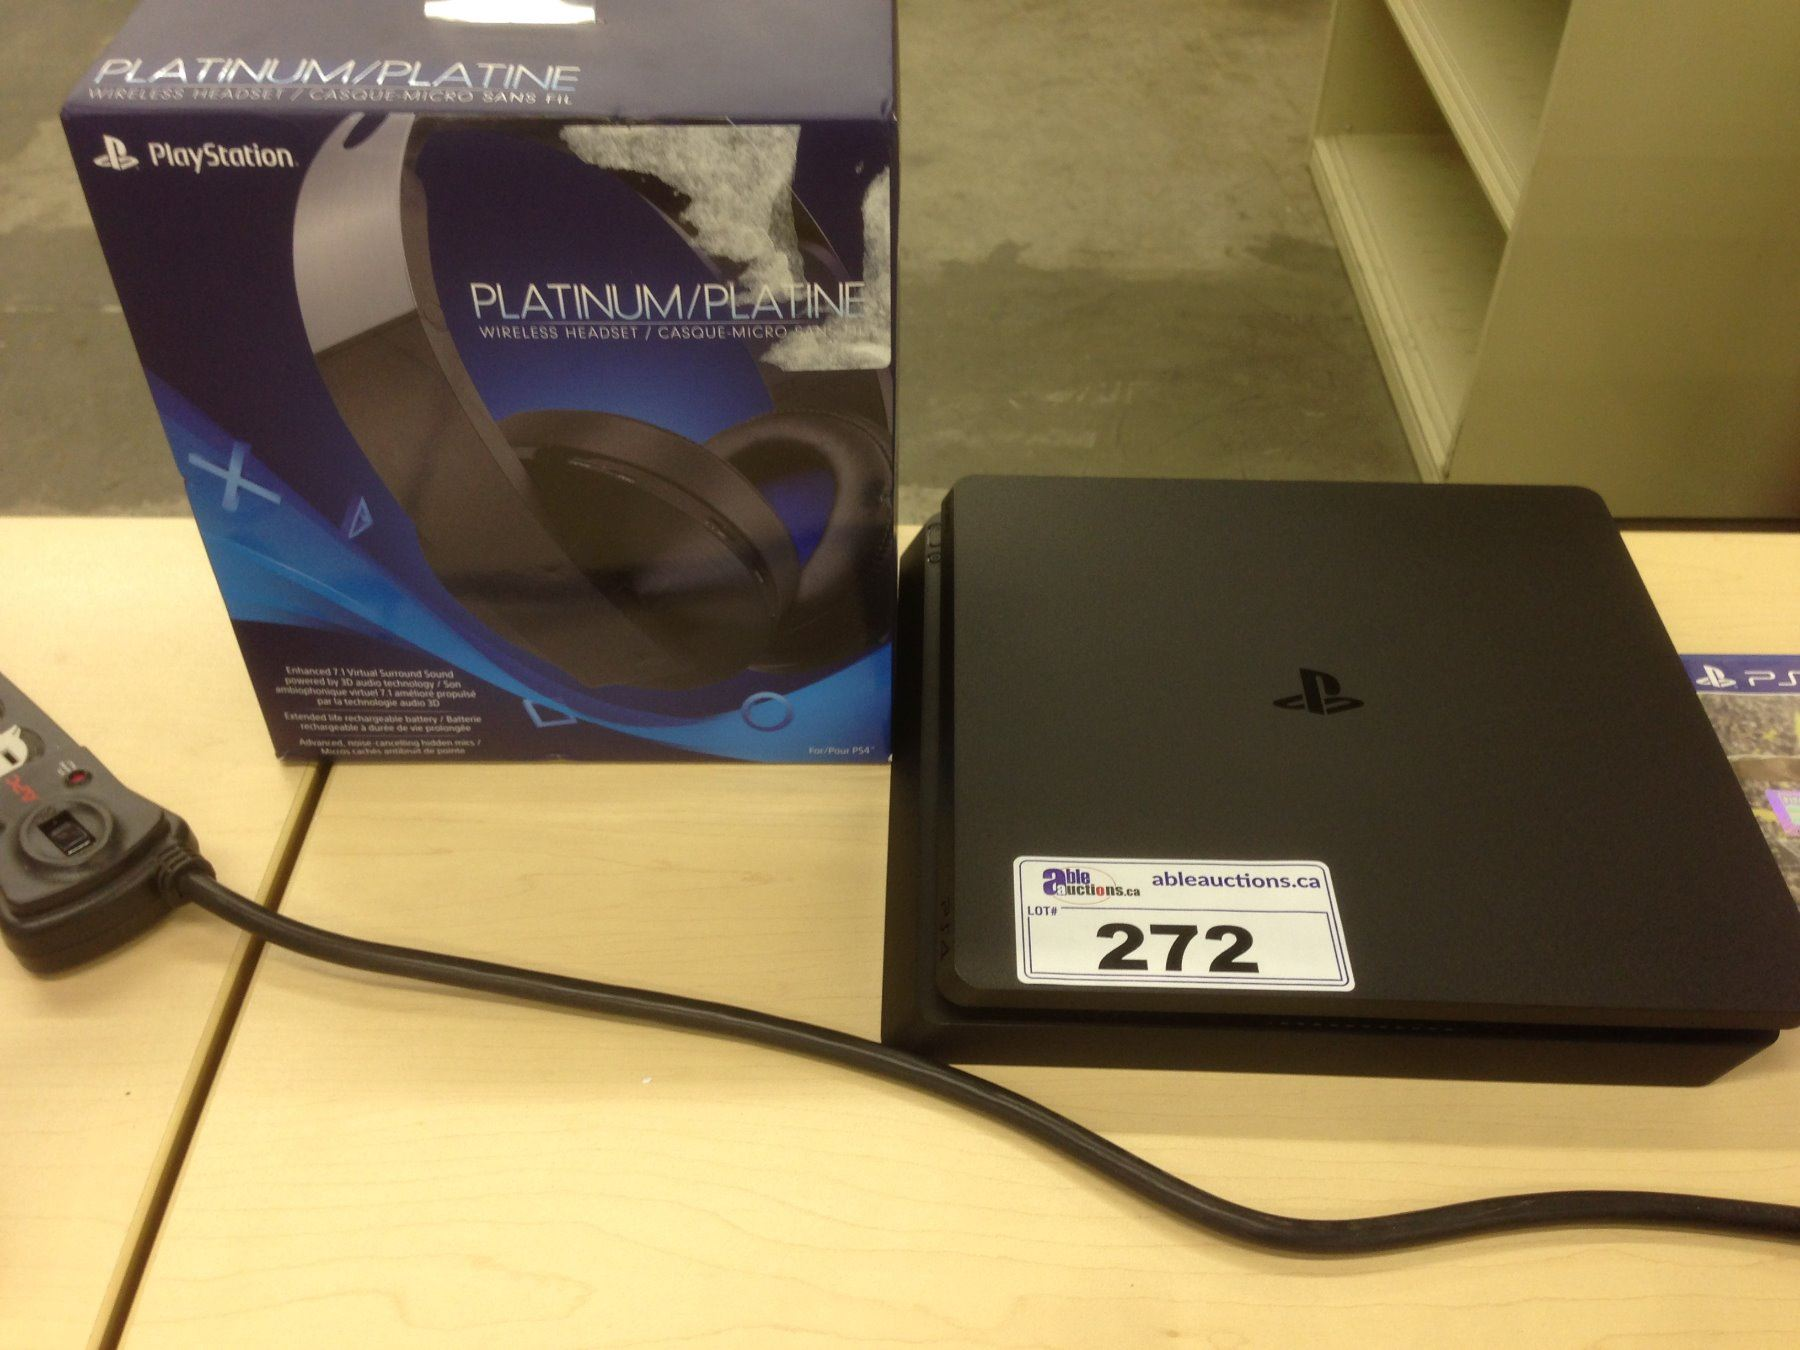 Sony Playstation 4 With Platinum Wireless Headset And Ps4 Game Fifa 17 Image 1 Fifa17 Not